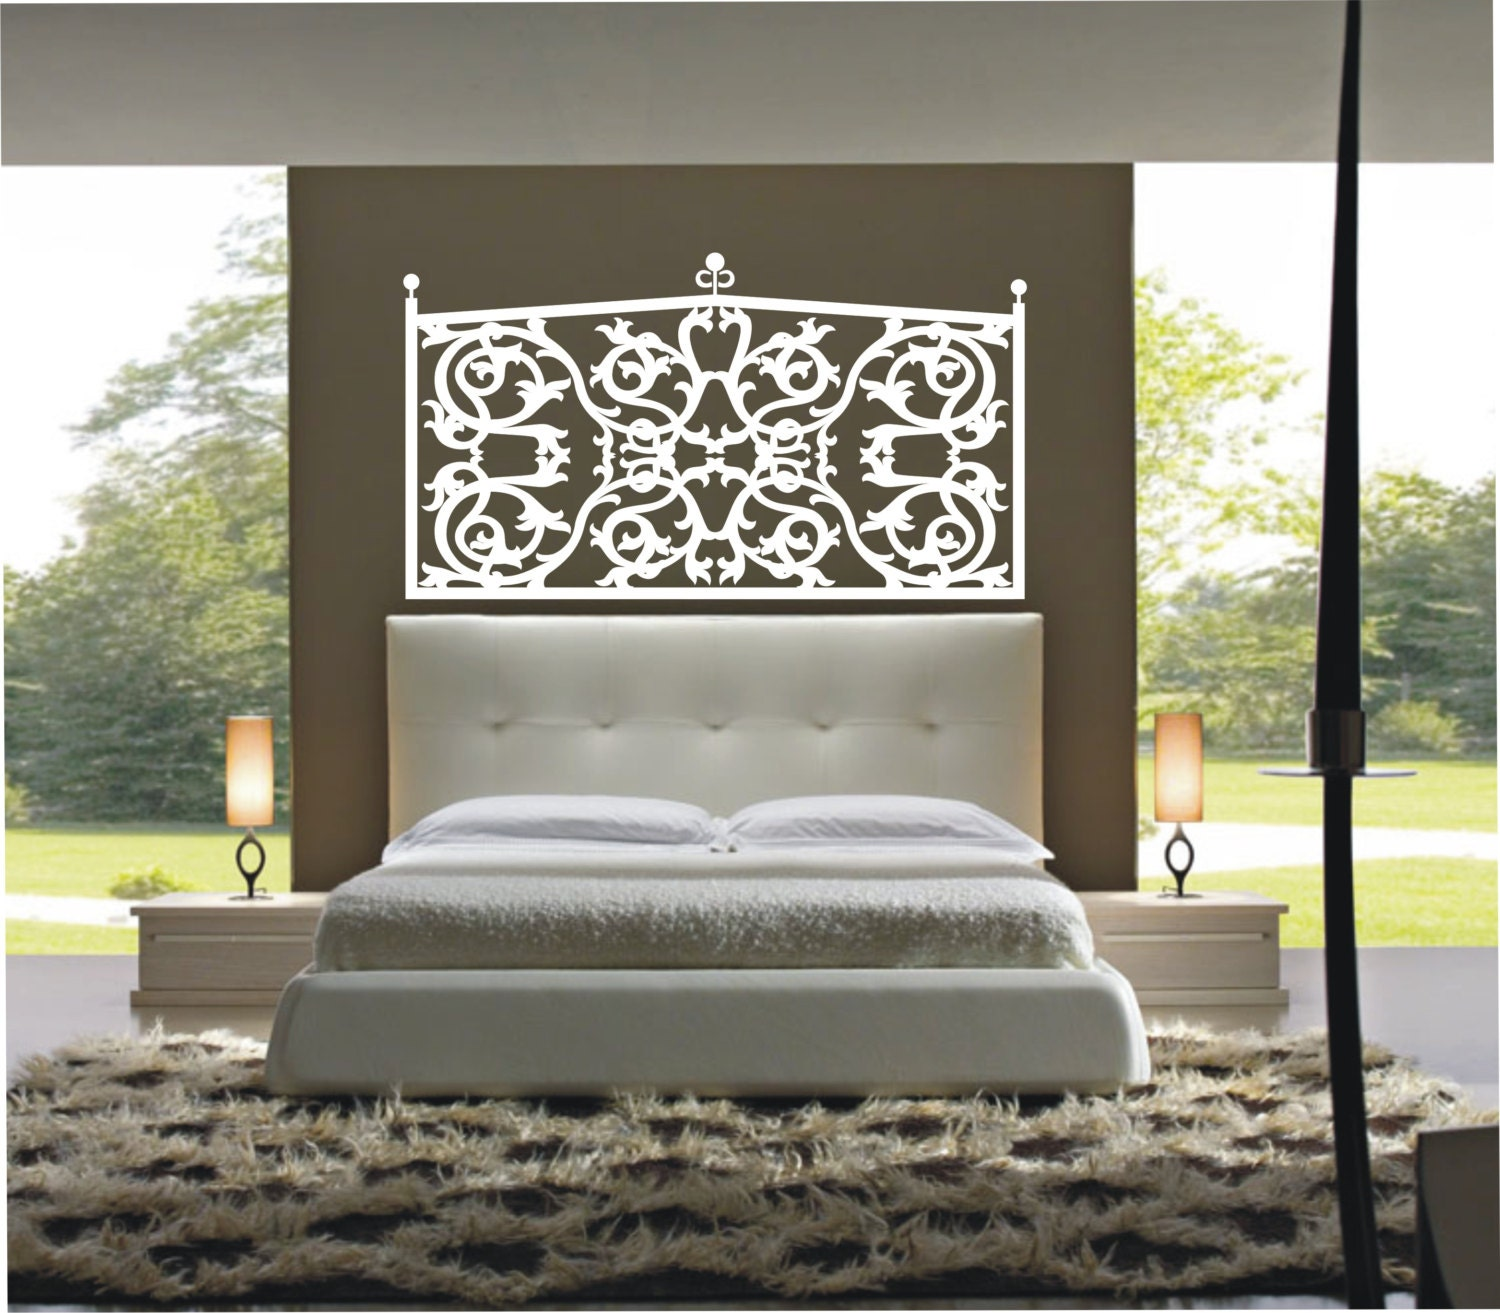 Vinyl decal wall sticker wall tattoo mural art headboard for Mural headboard